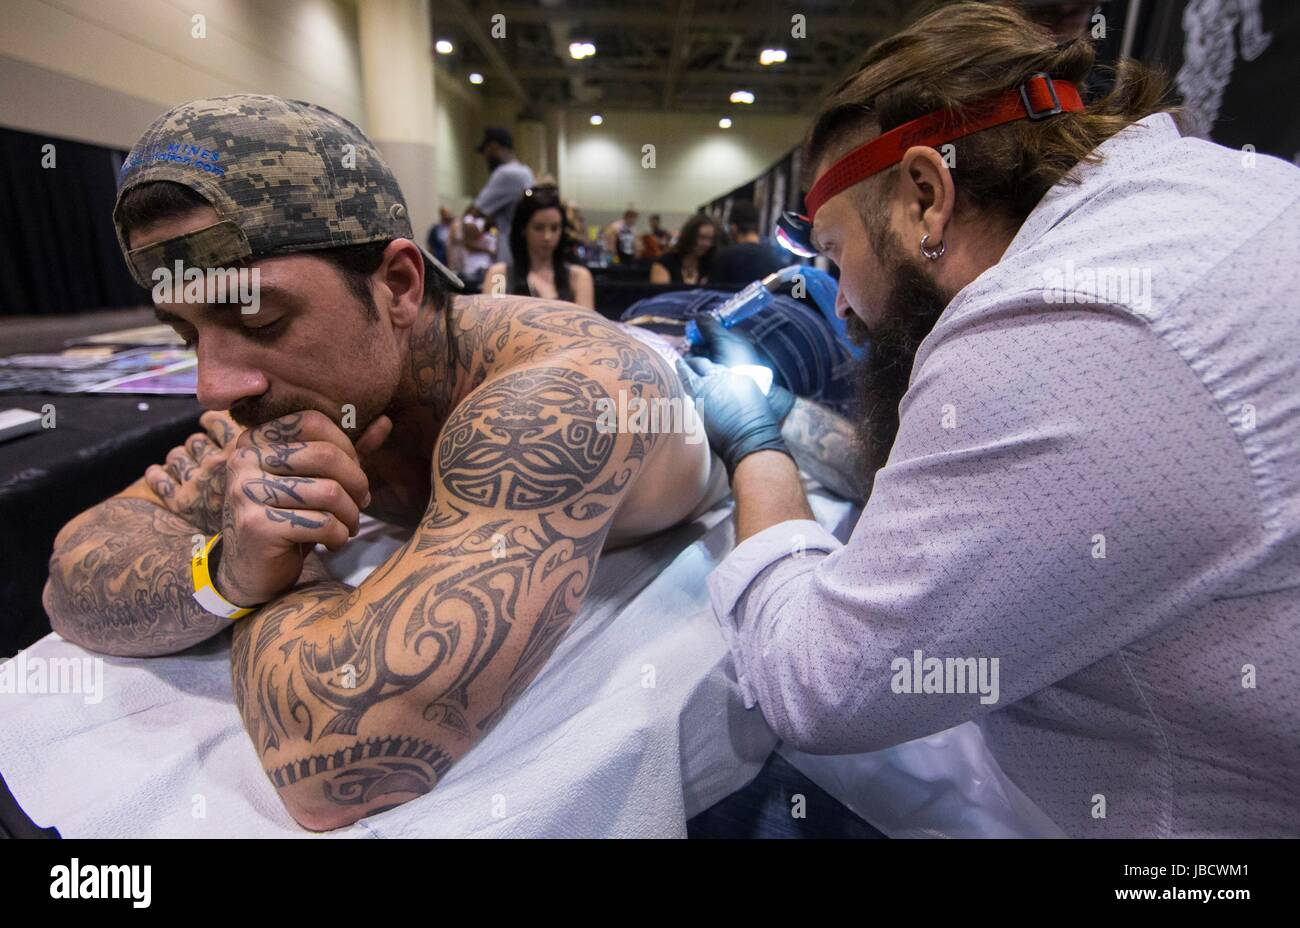 Toronto, Canada. 10th June, 2017. A man is tattooed at the 2017 Toronto Tattoo Show in Toronto, Canada, June 10, - Stock Image